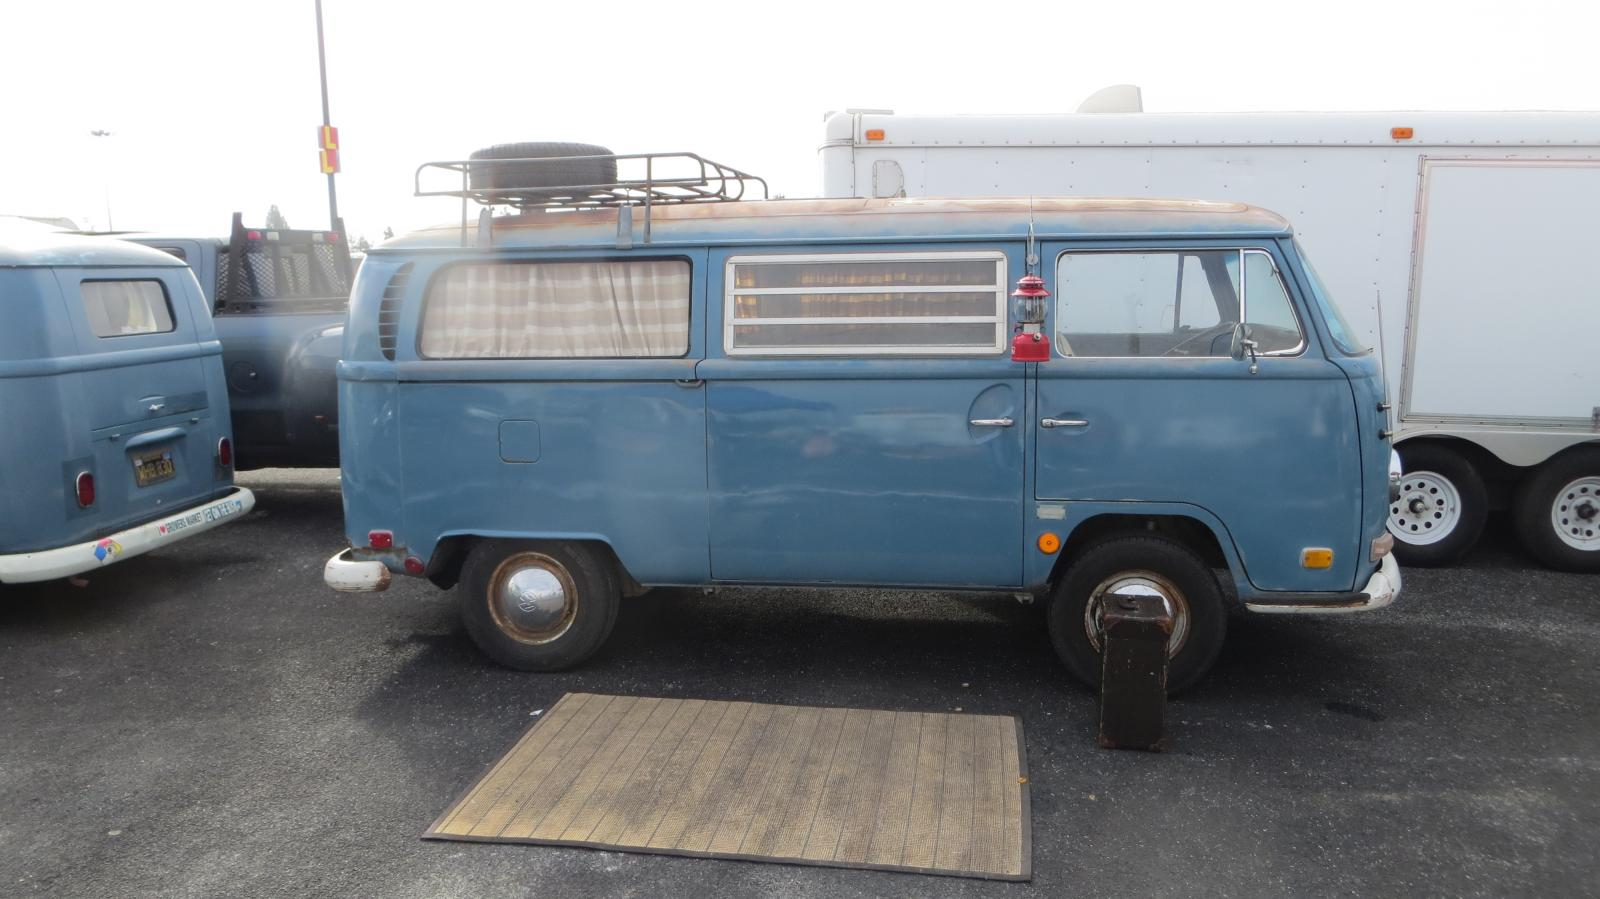 Bay Window Camper Photos from Red Barn 2019 (Sat. April 13th, 2019)